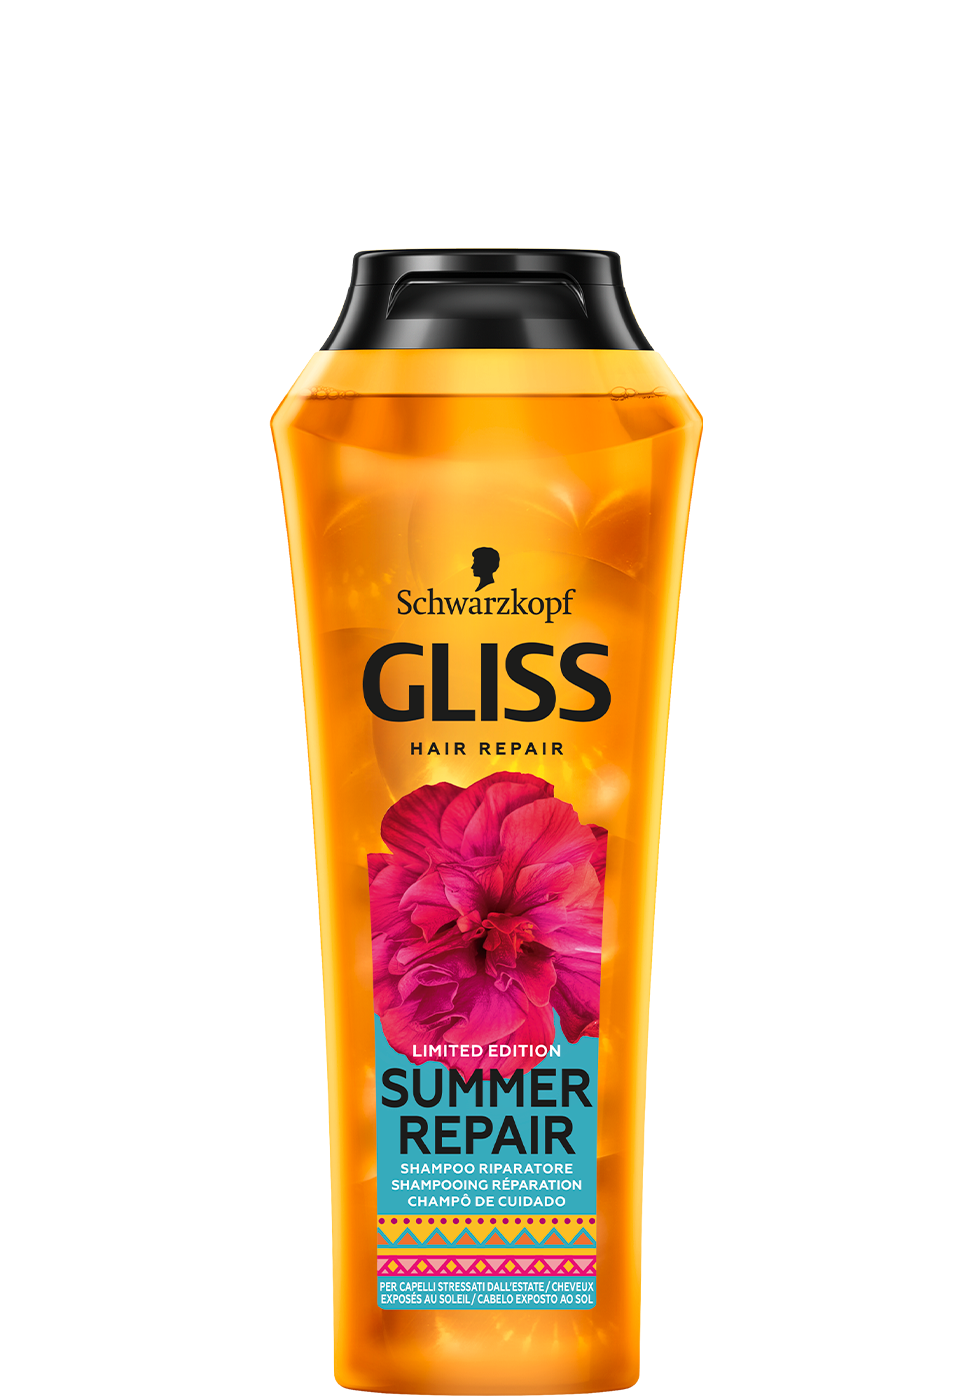 SKP_GLISS-SUMMER-REPAIR-2021_970x1400_SKP-GLISS-SUMMER-REPAIR-RL2021_SHP